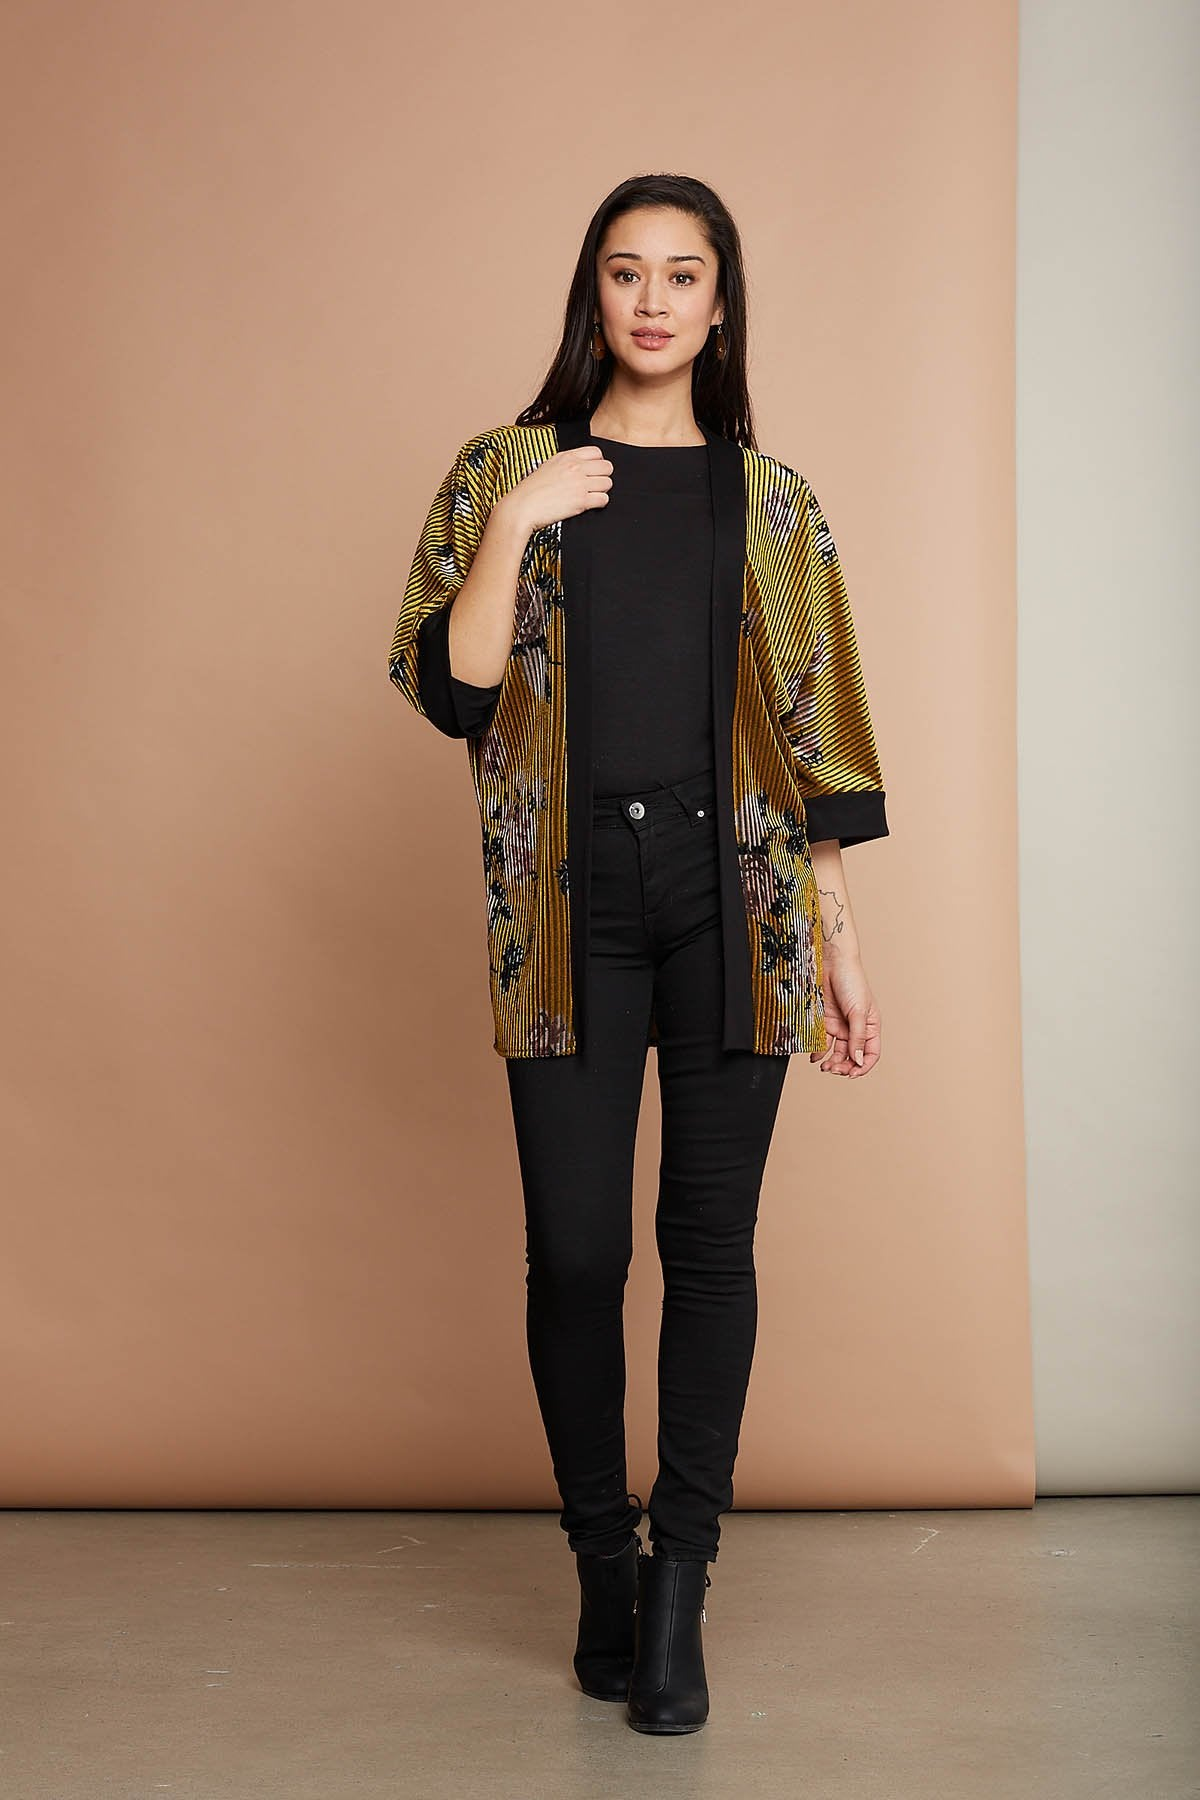 Sora cardigan by Cherry Bobin; yellow ribbed texture velvet, contrast black cuffs at the sleeves, lilac floral pattern; kimono style cardigan; styled over a black tank top, black skinny jeans, and black boots